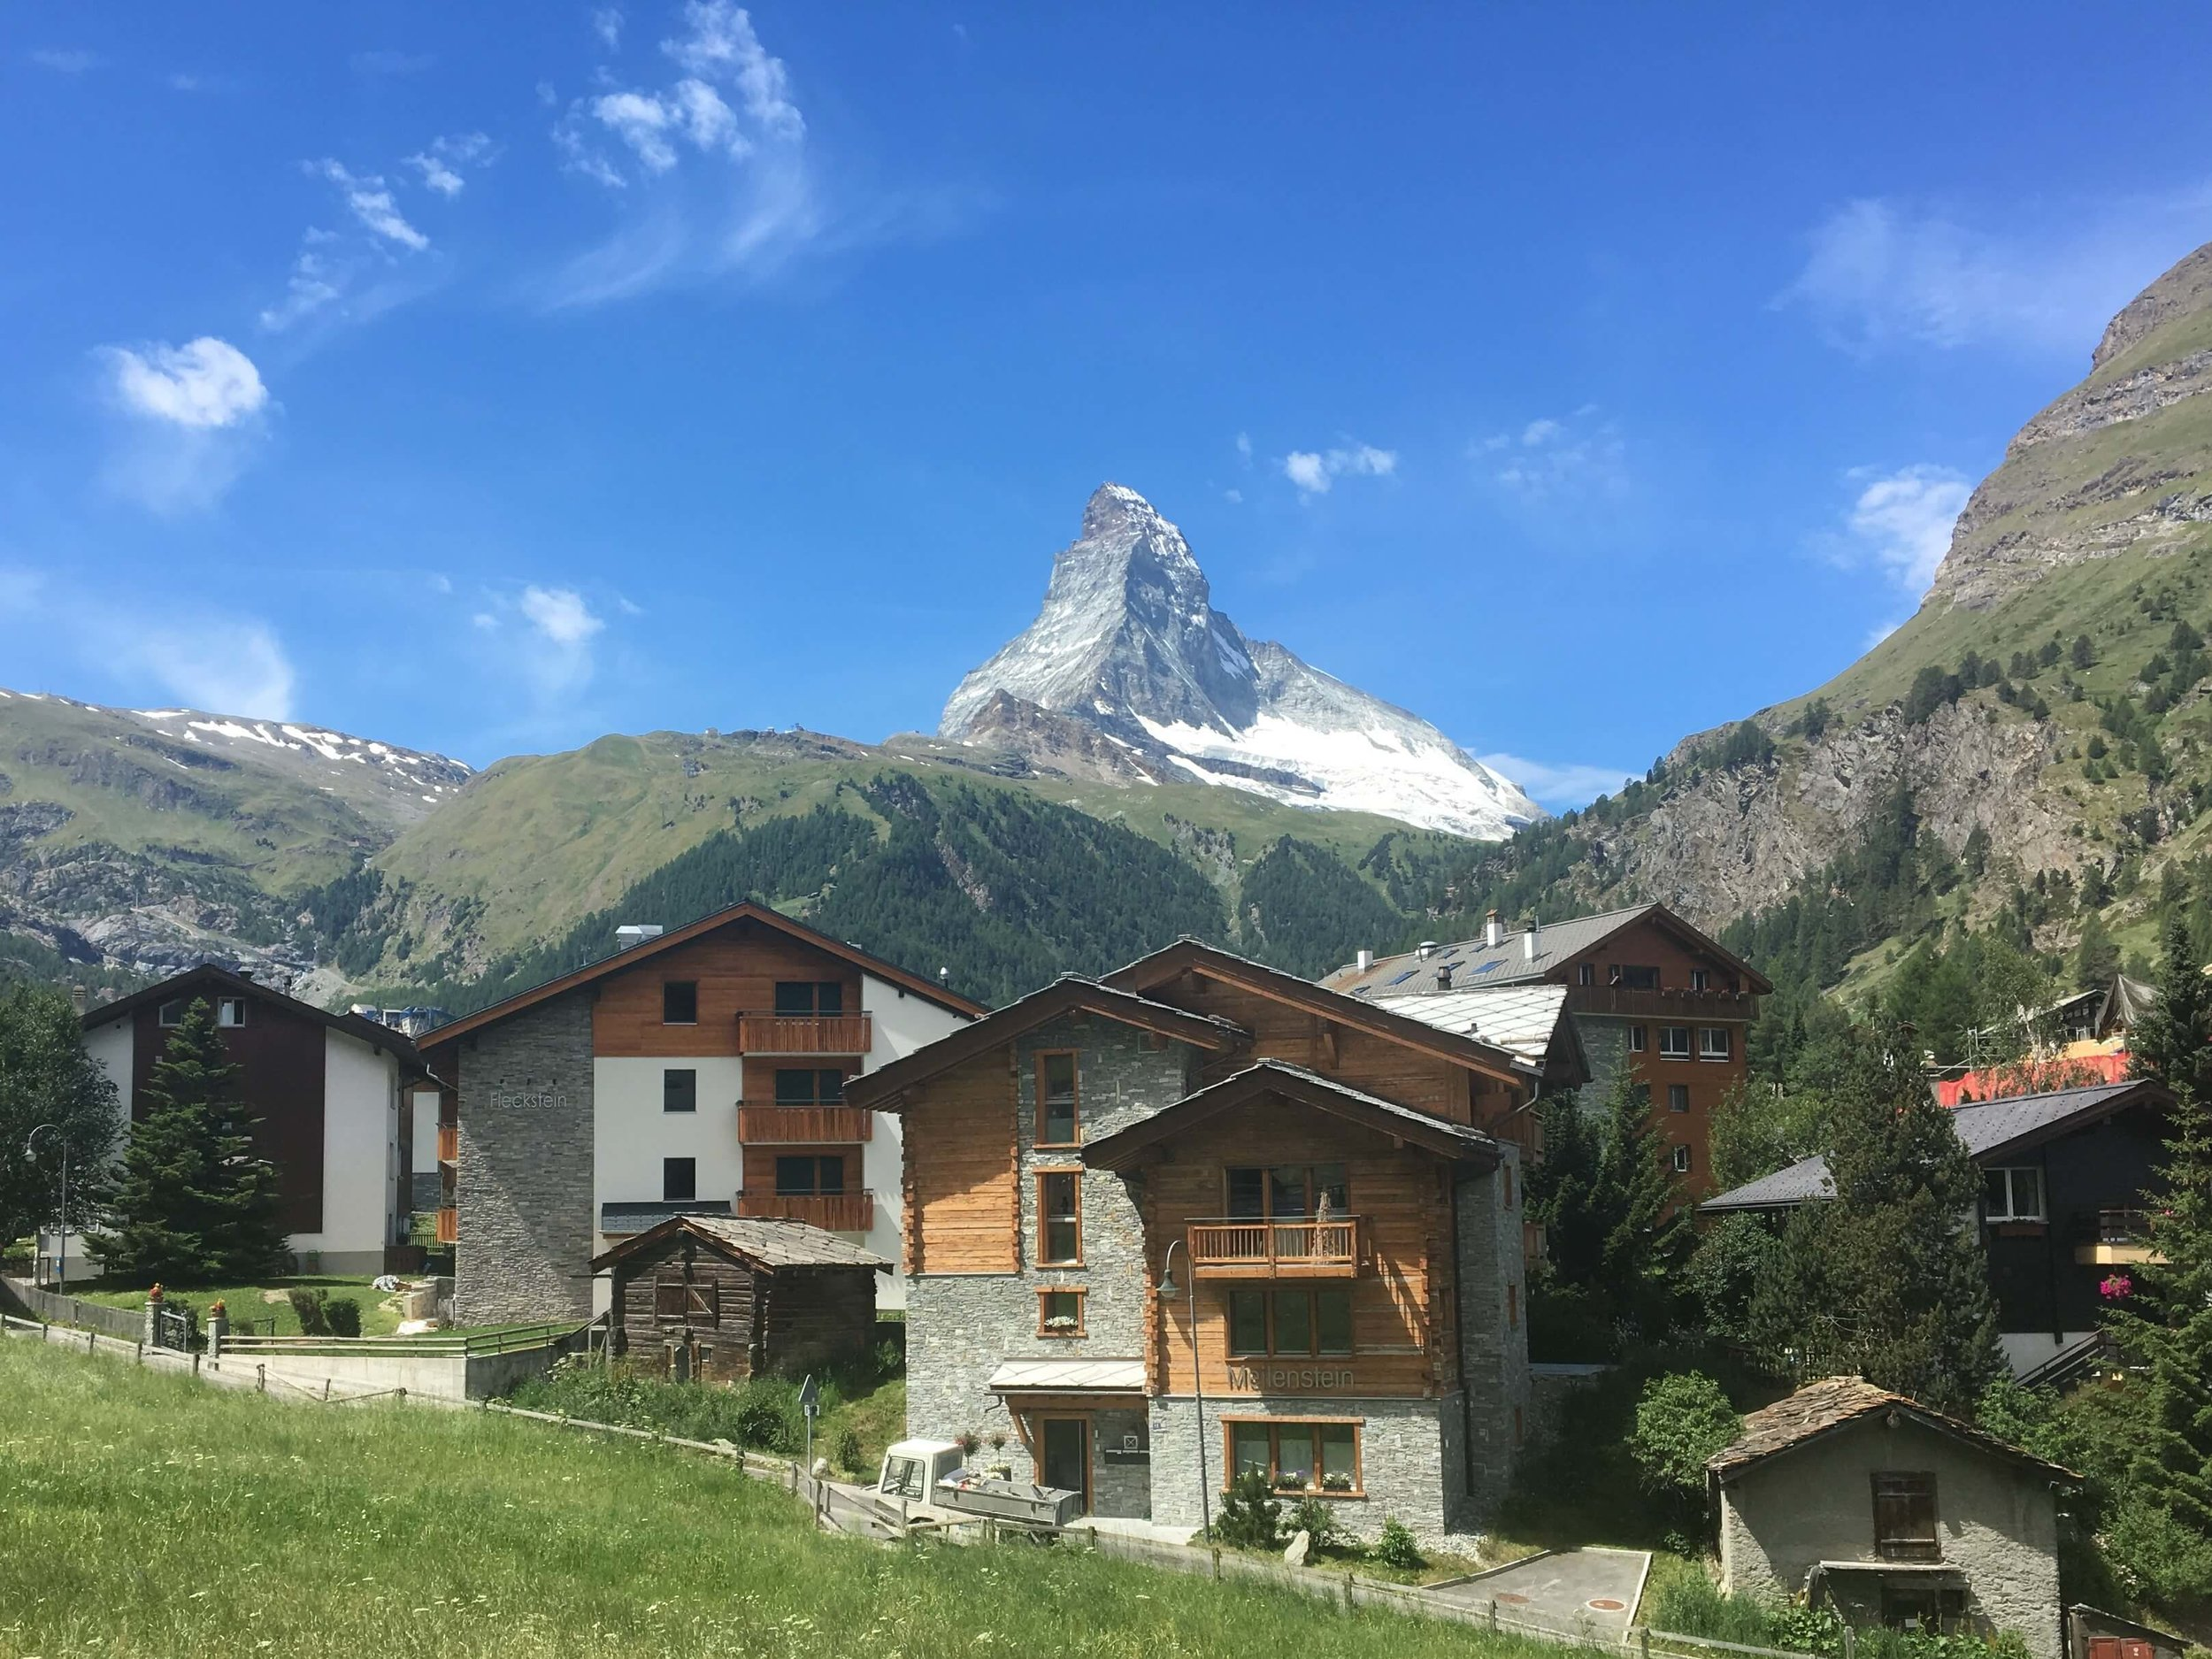 Sending a bag to Zermatt is a popular option so hikers have fresh clothes that haven't been worn on the trail